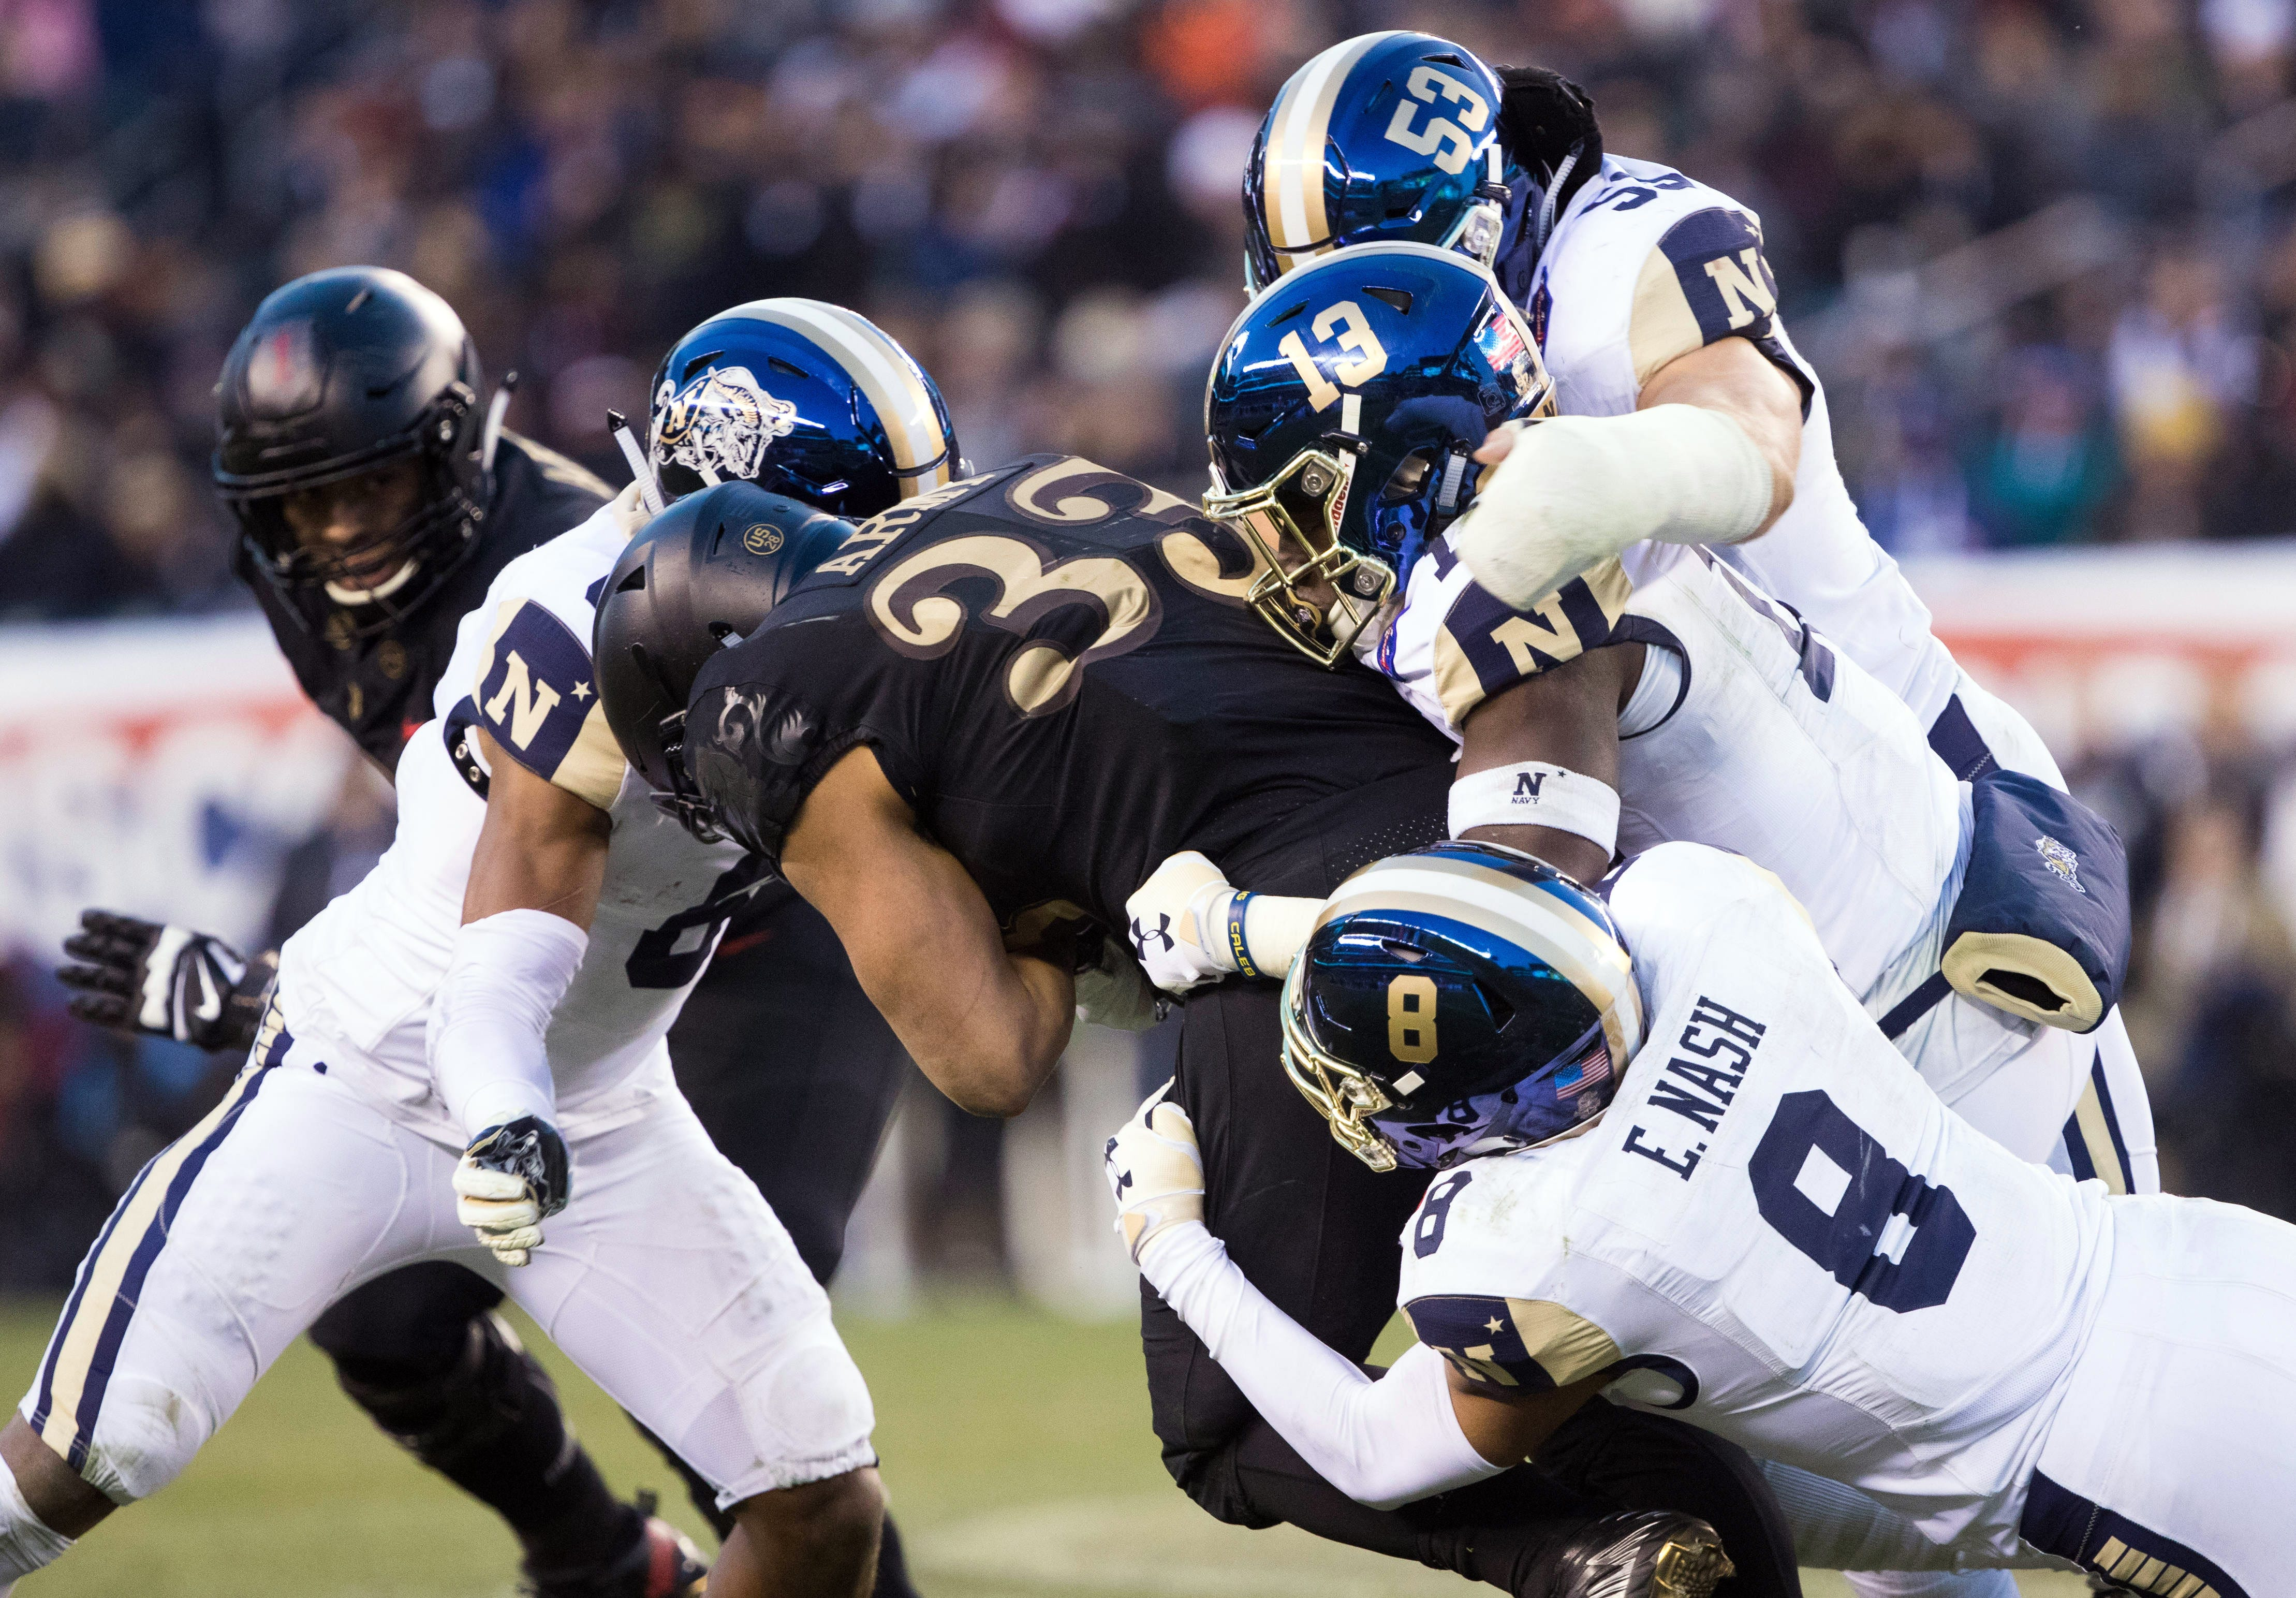 How to watch Army vs. Navy game 2019: Schedule, TV channel, start time, livestream